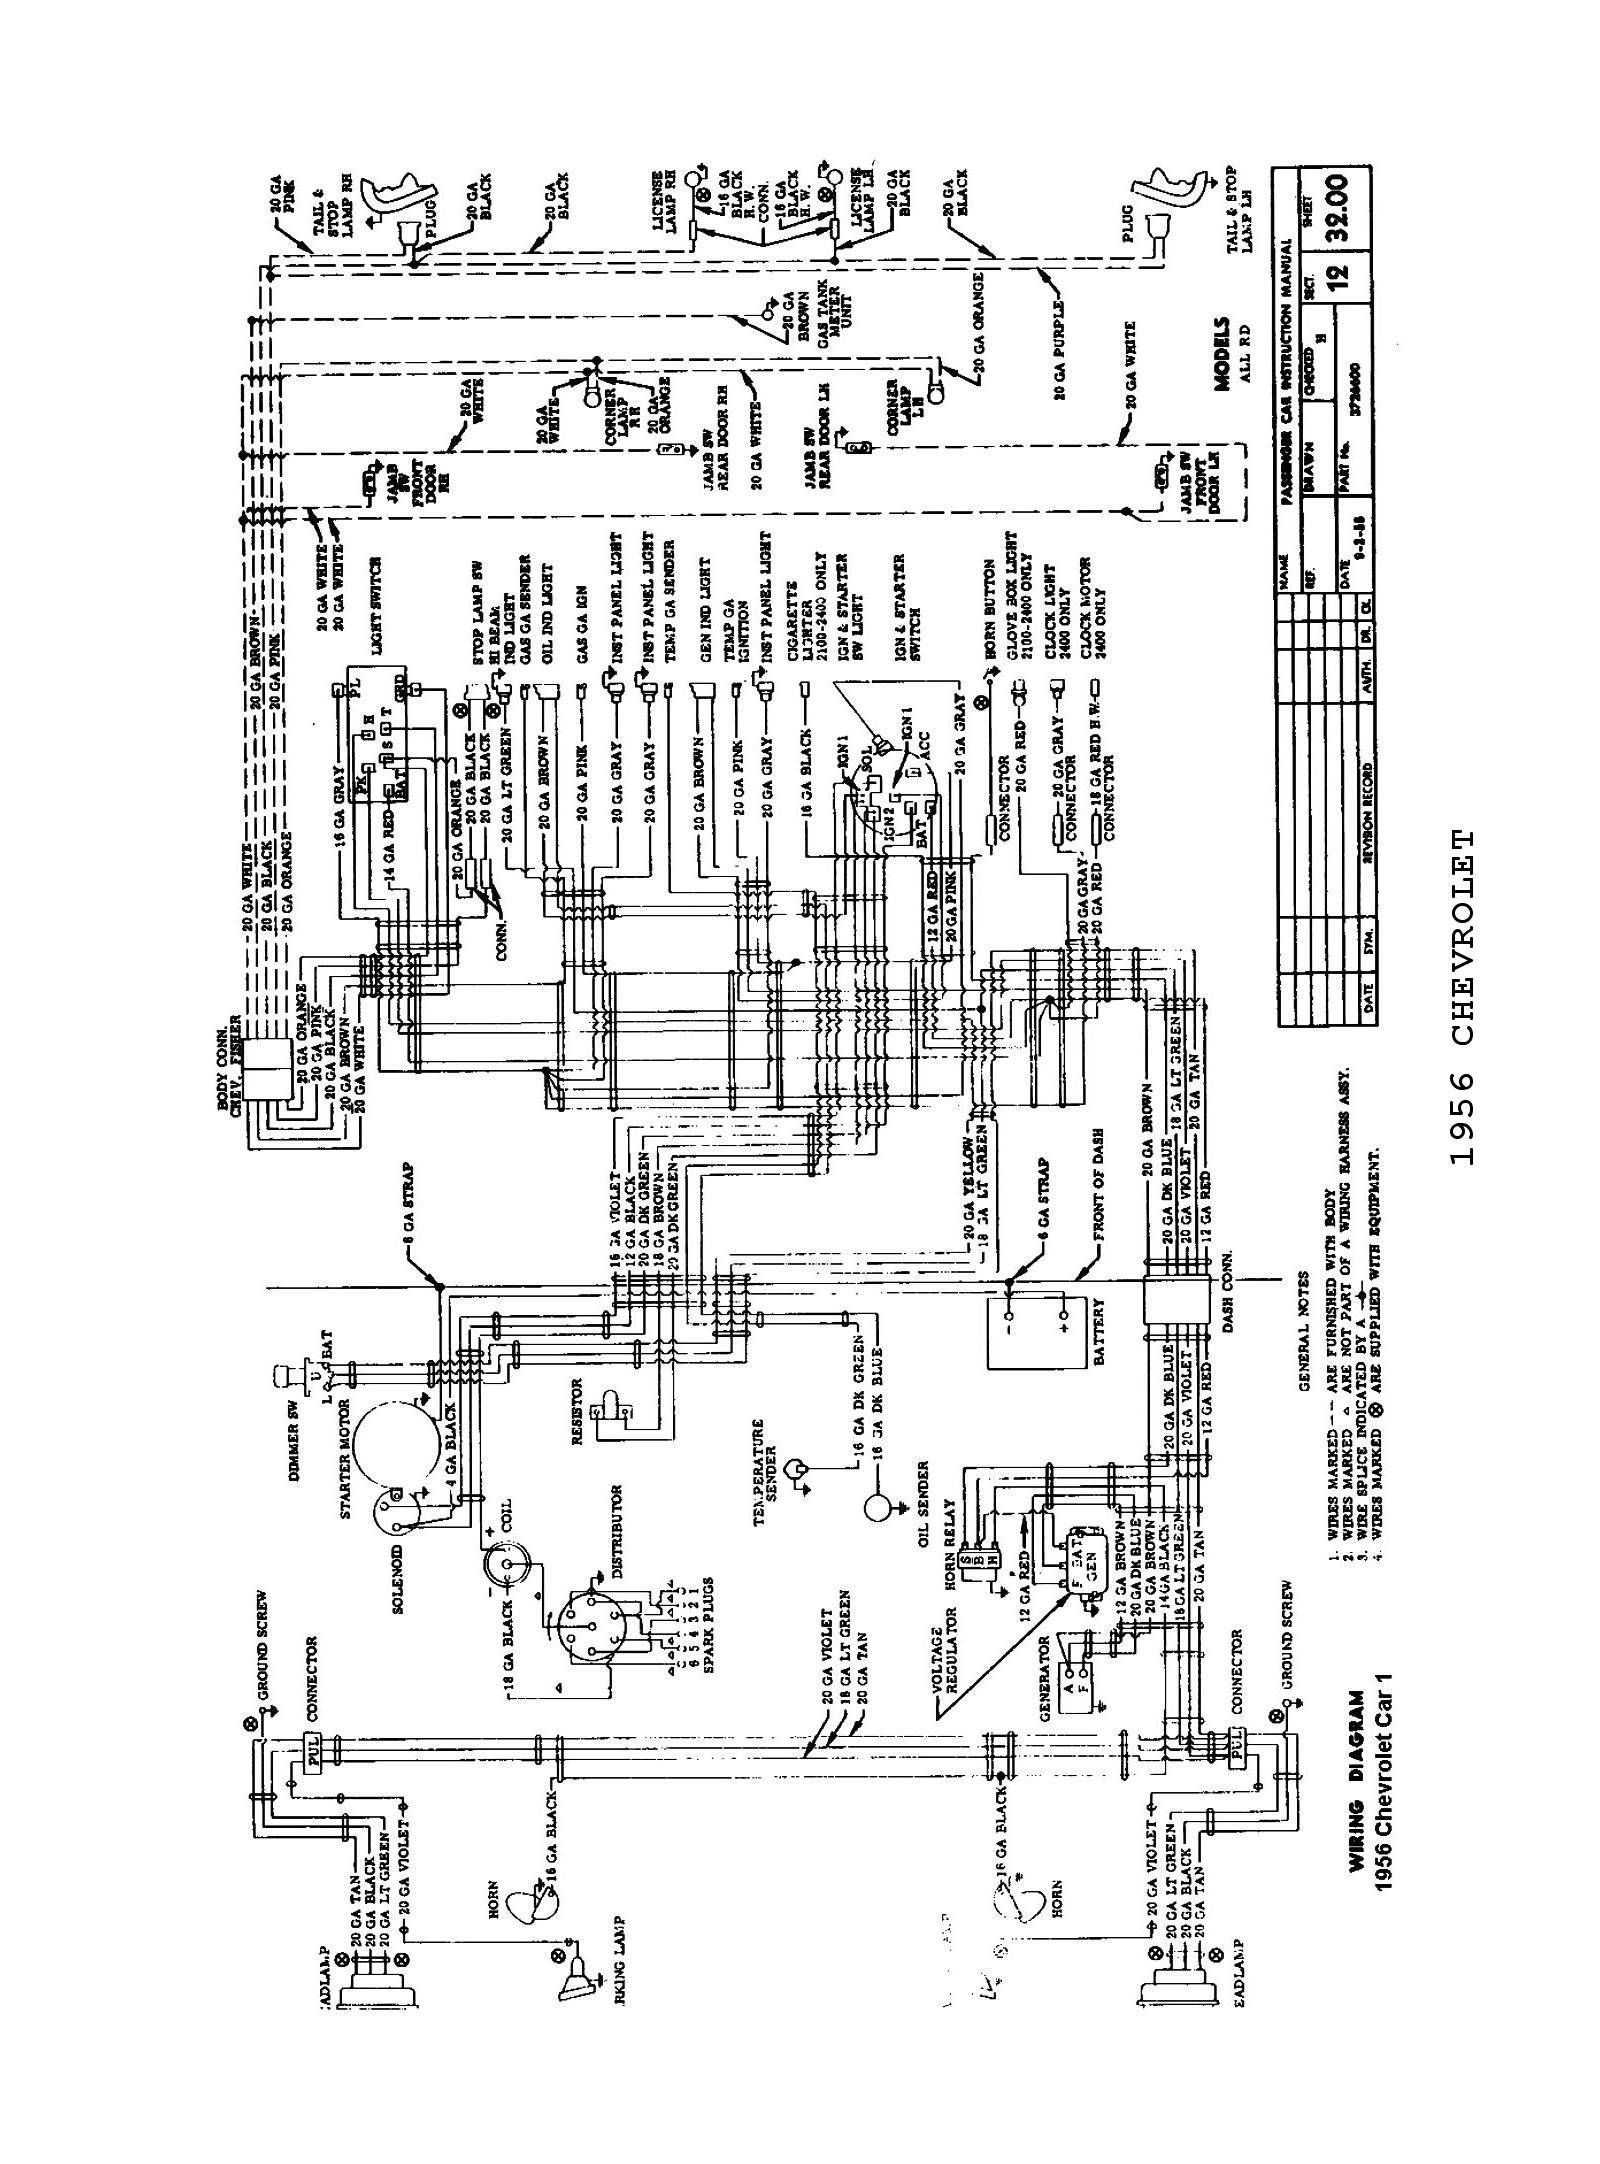 [WRG-6251] 1965 Chevrolet Pickup Wiring Diagram